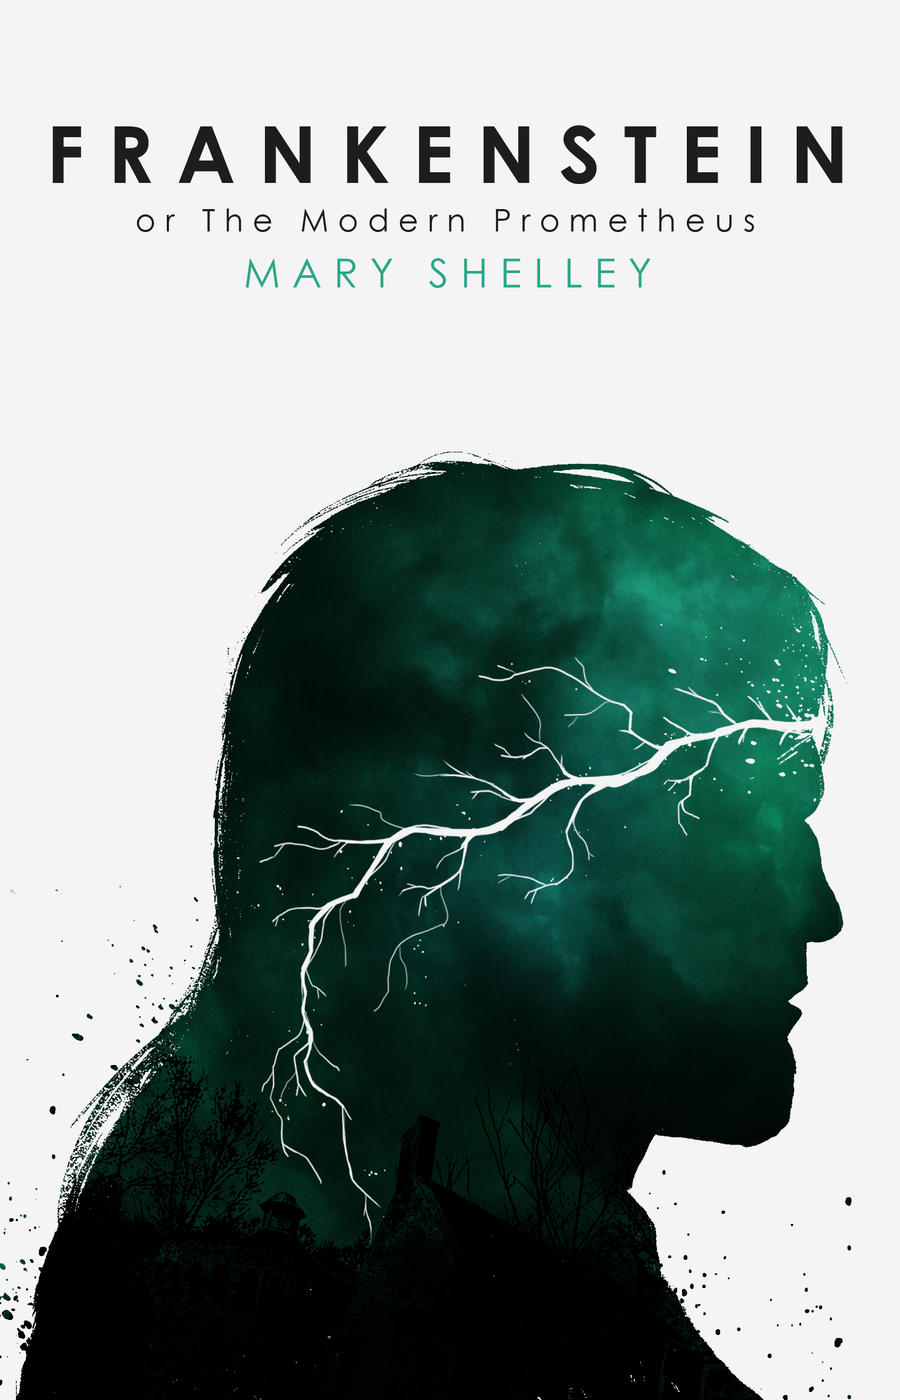 Cool Book Cover Drawings ~ Frankenstein cover by mscorley on deviantart